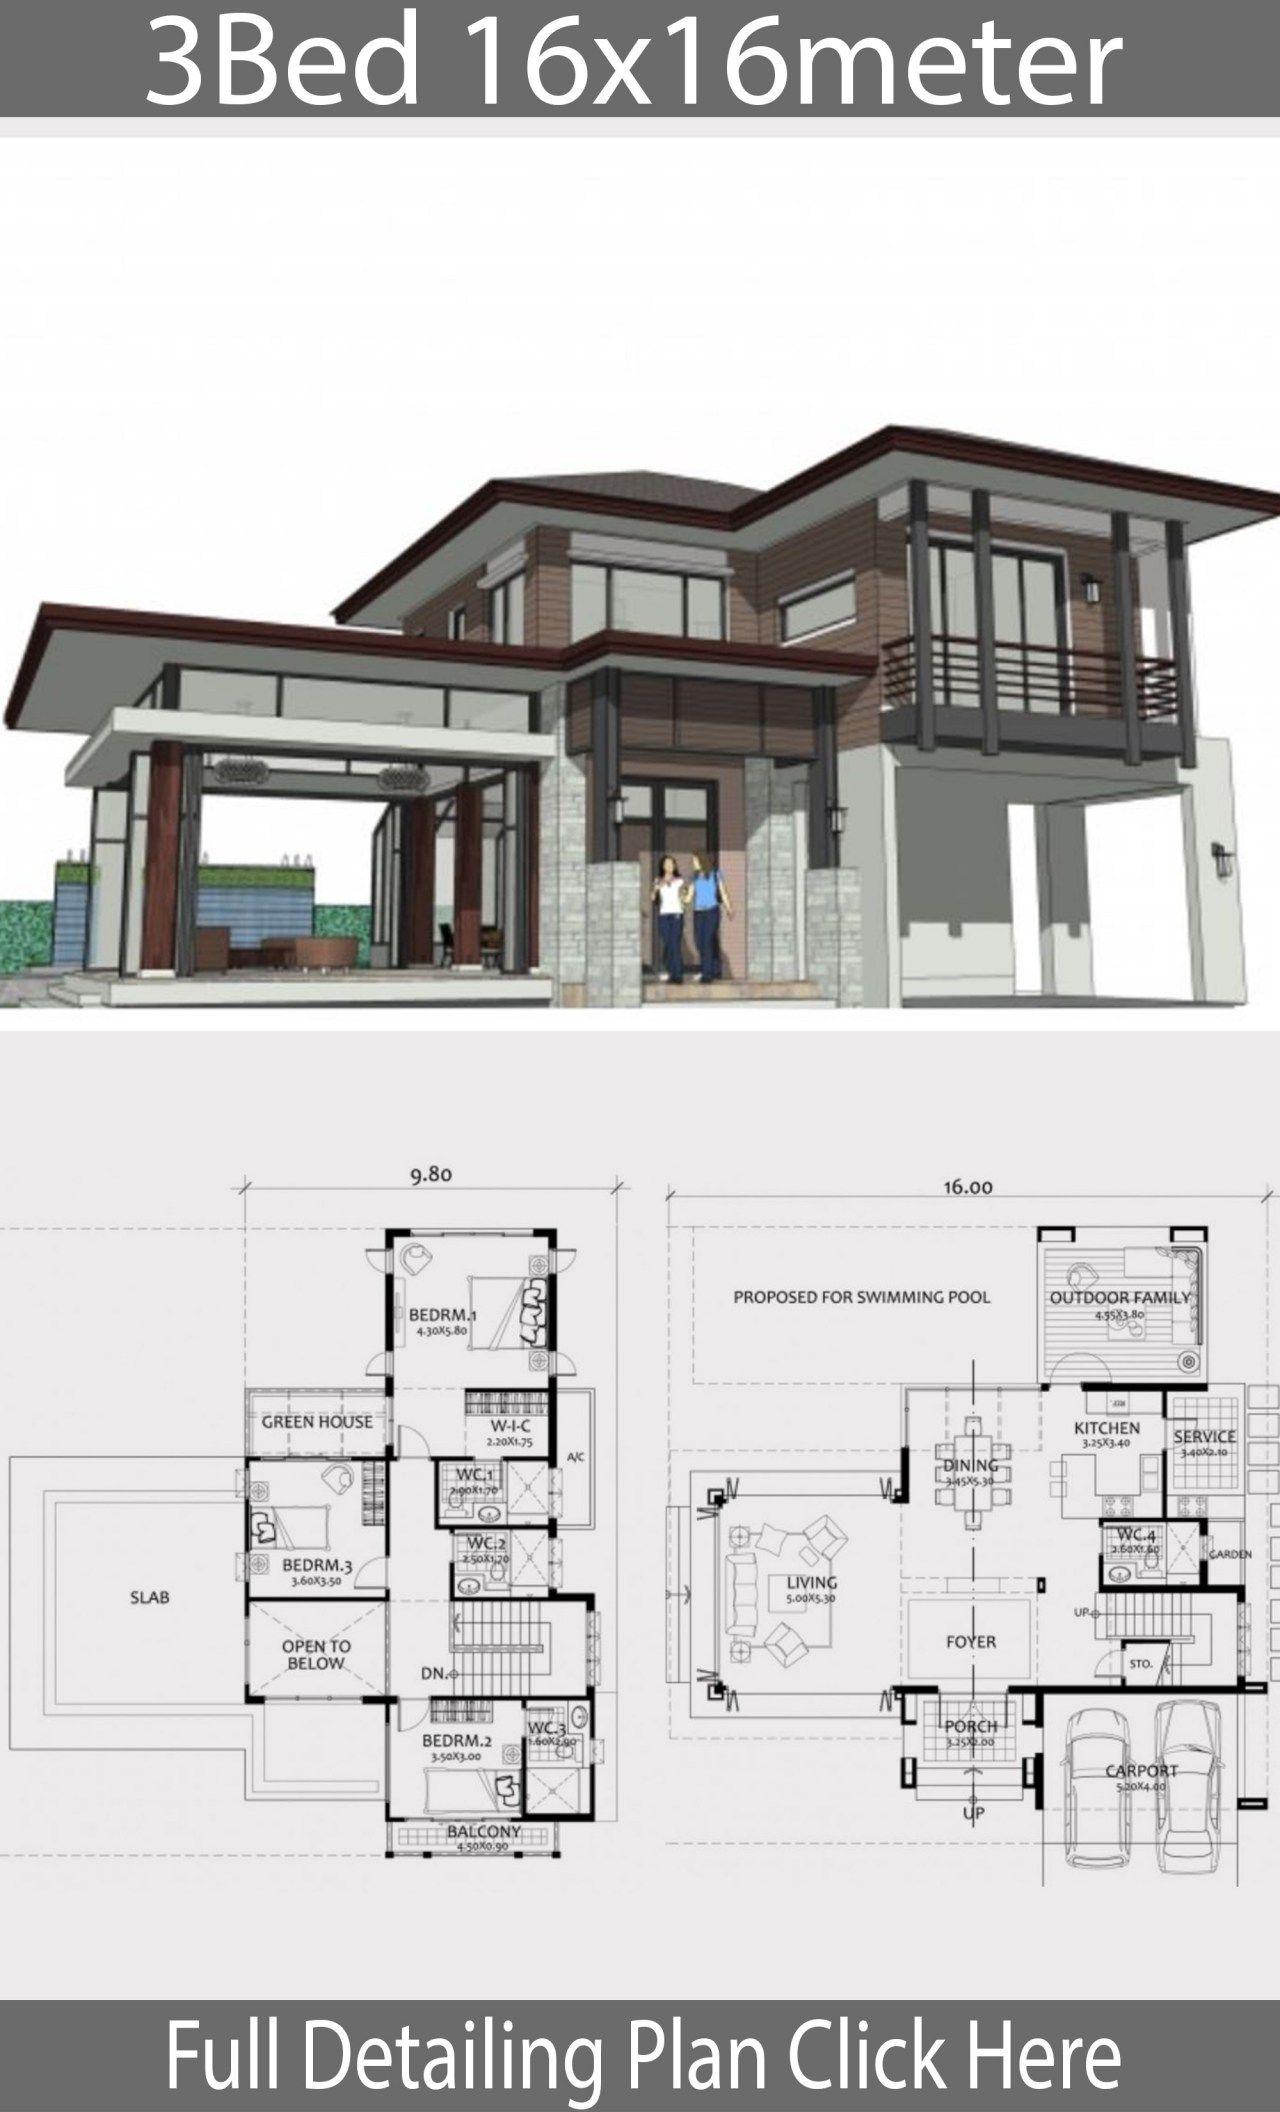 Home Design Plan 16x16m With 3 Bedrooms Home Ideas Model House Plan Home Building Design Building Plans House